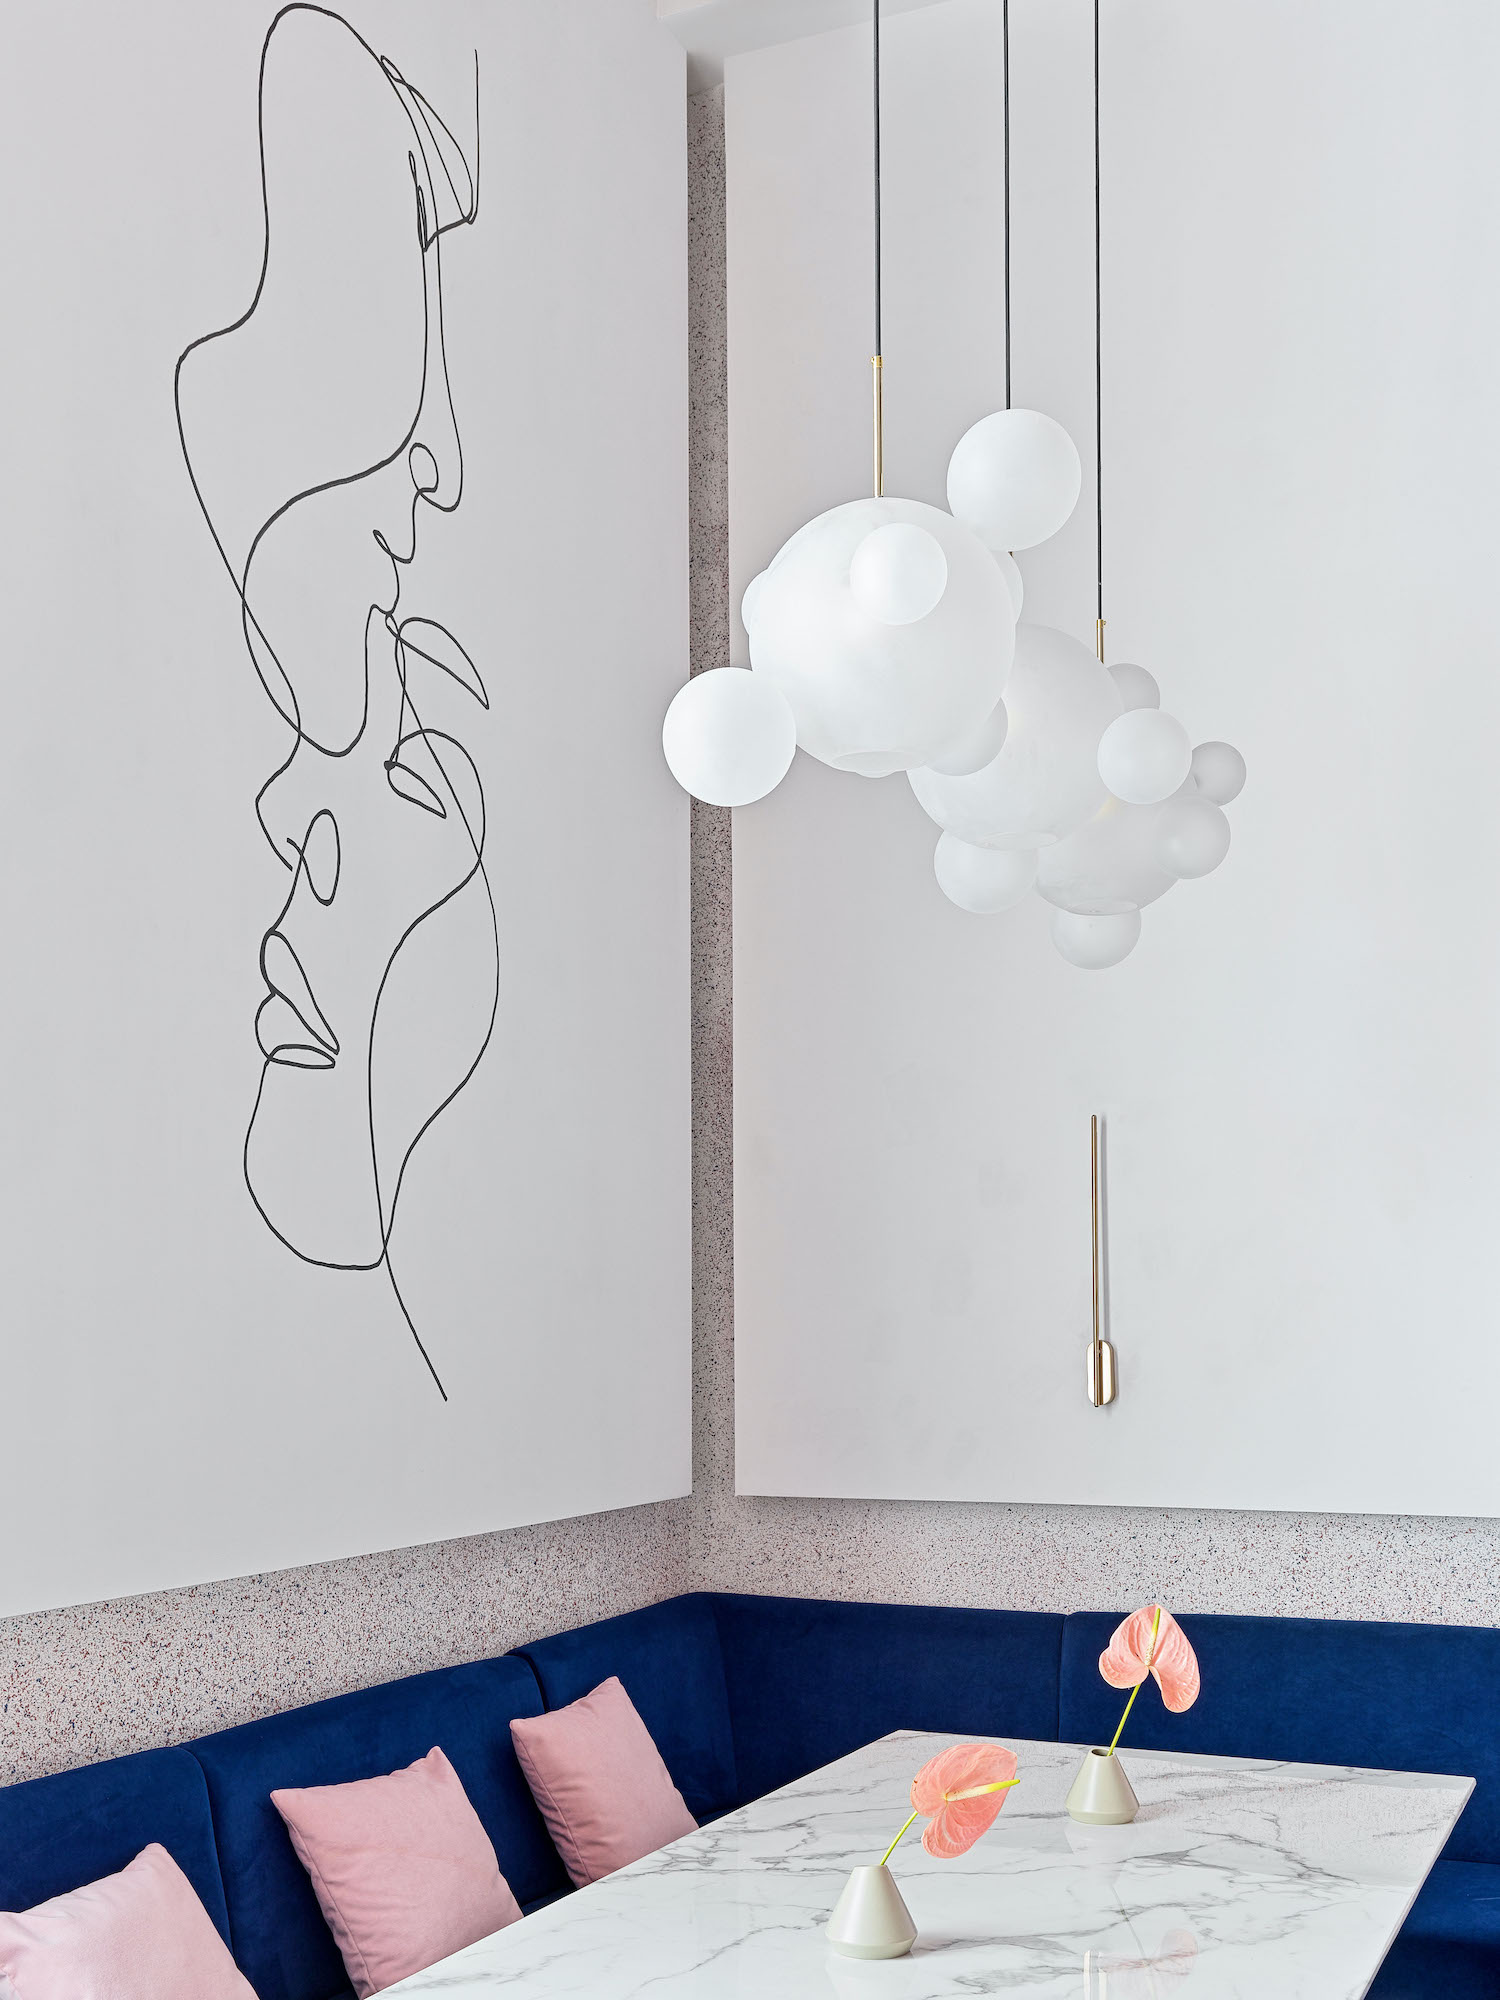 drawings painting on the wall